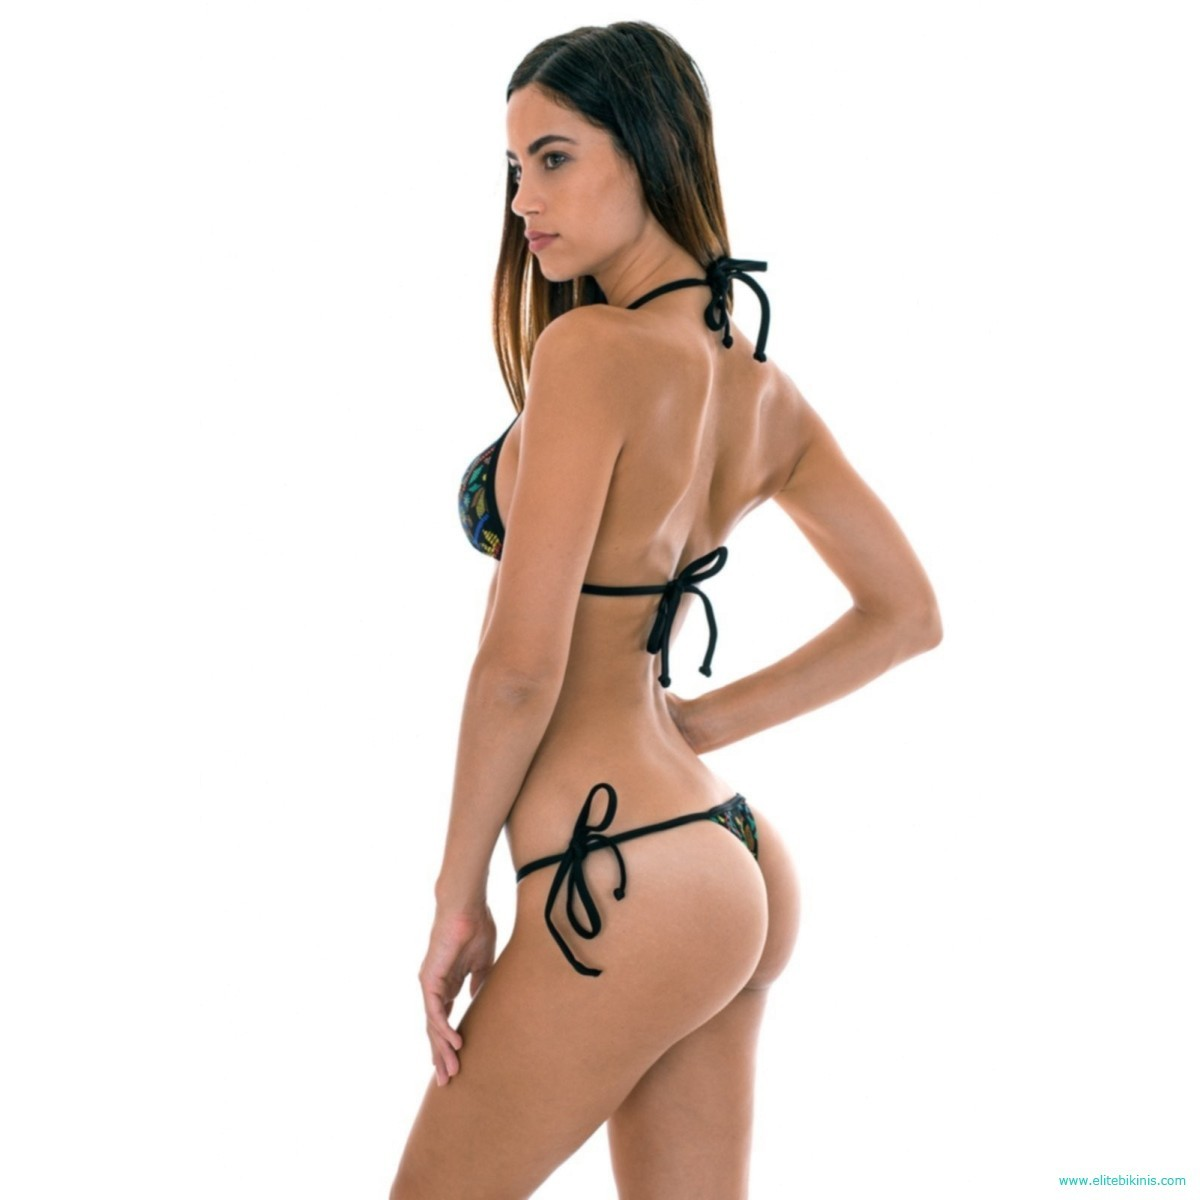 5655316e738 This black micro bikini, also known as thong, belongs to the 2018  collection by the known brand, Rio de Sol, and it's made in Brazil.